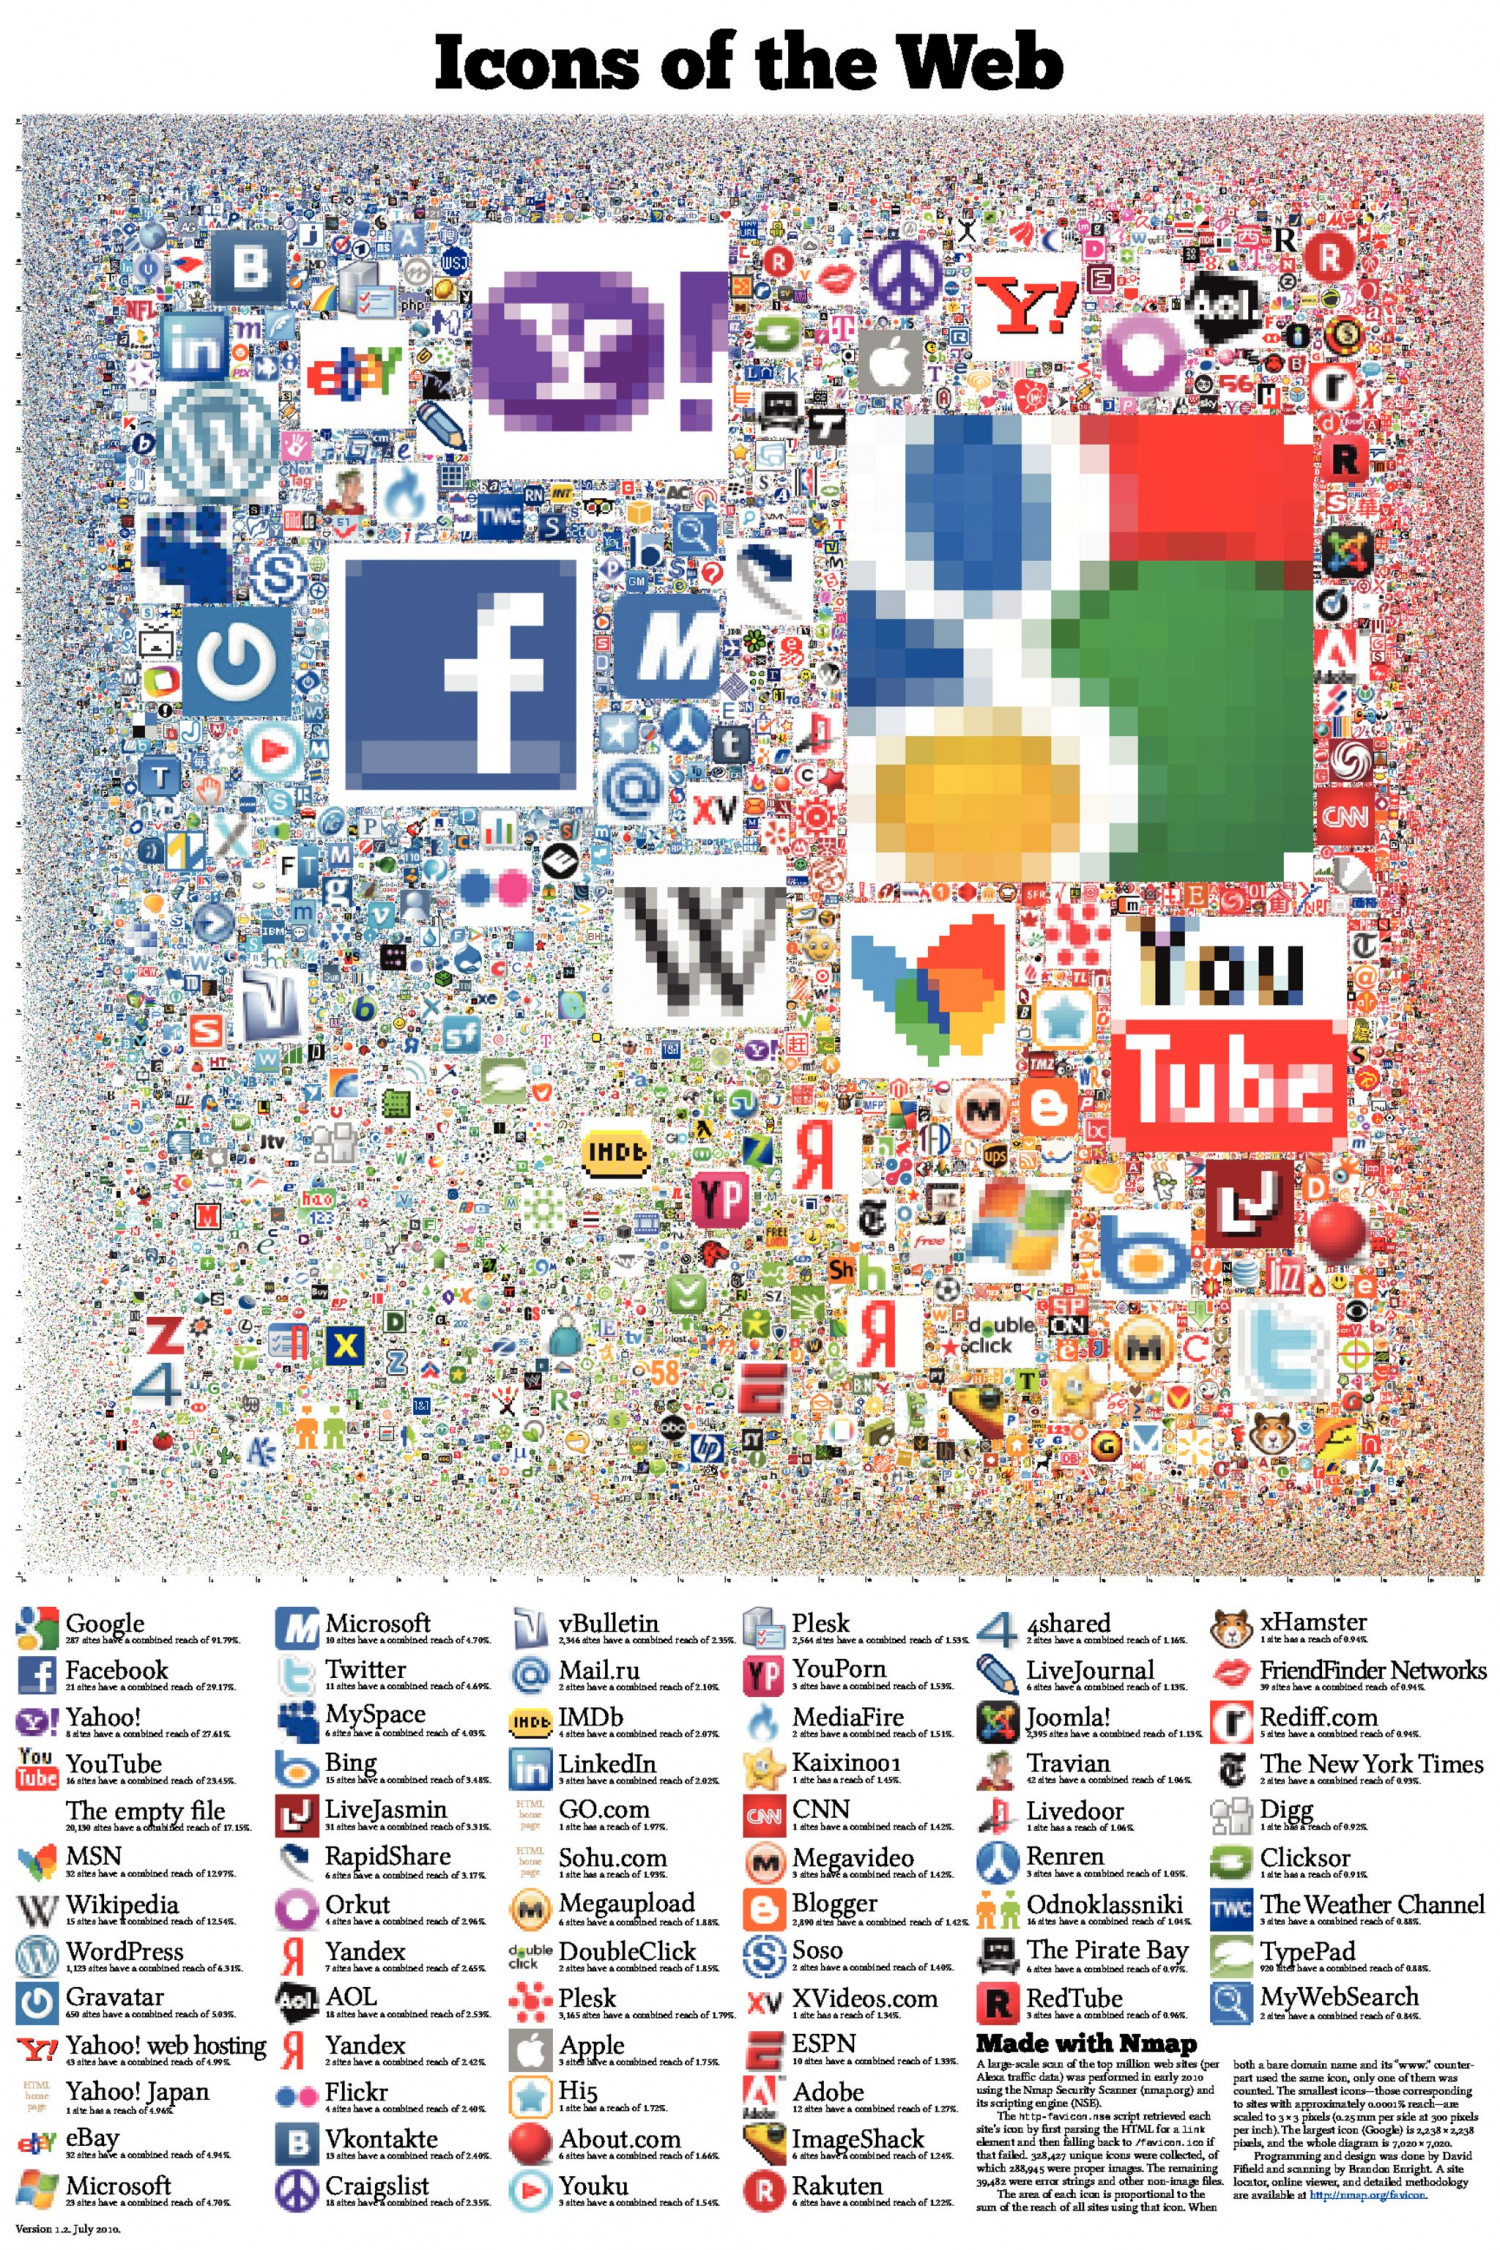 Icons of the Web Infographic